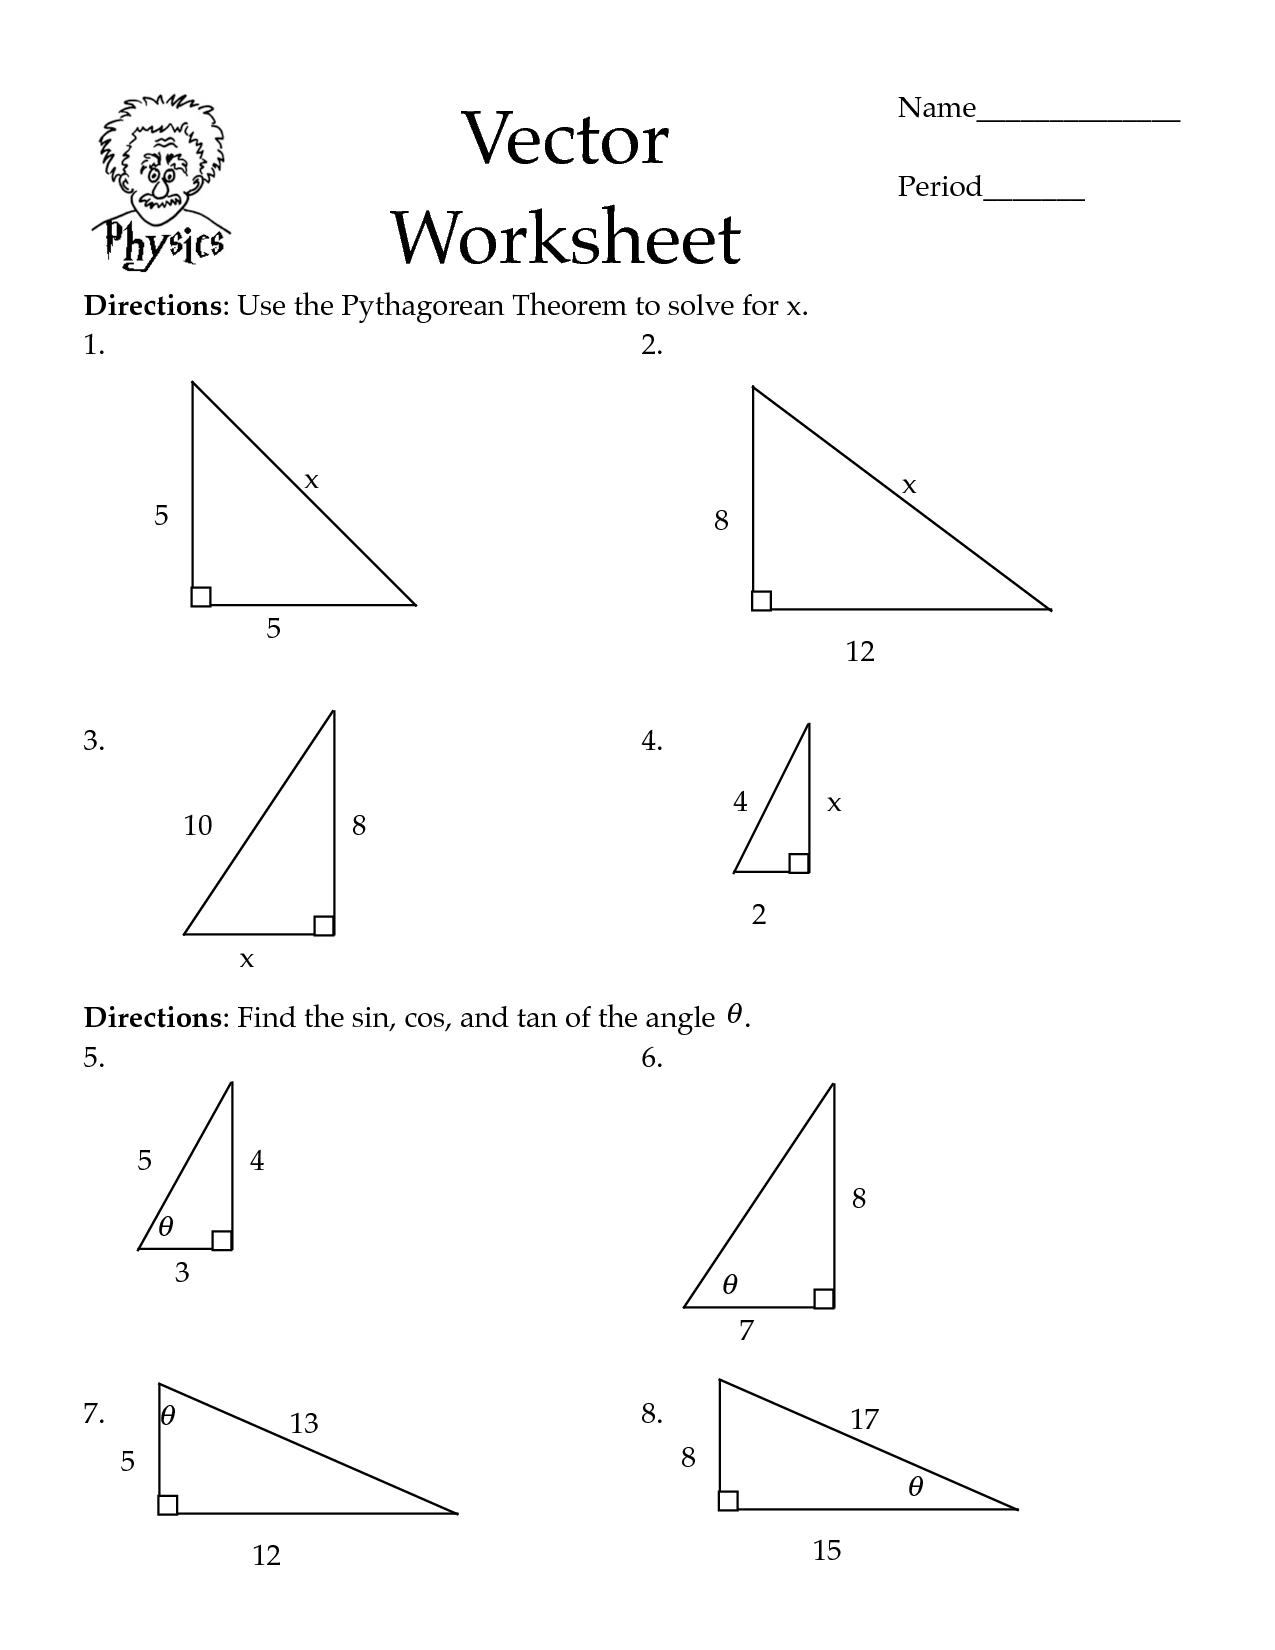 pythagorean theorem worksheets Cos Law Worksheet PDF – Similar Triangles Worksheet Pdf